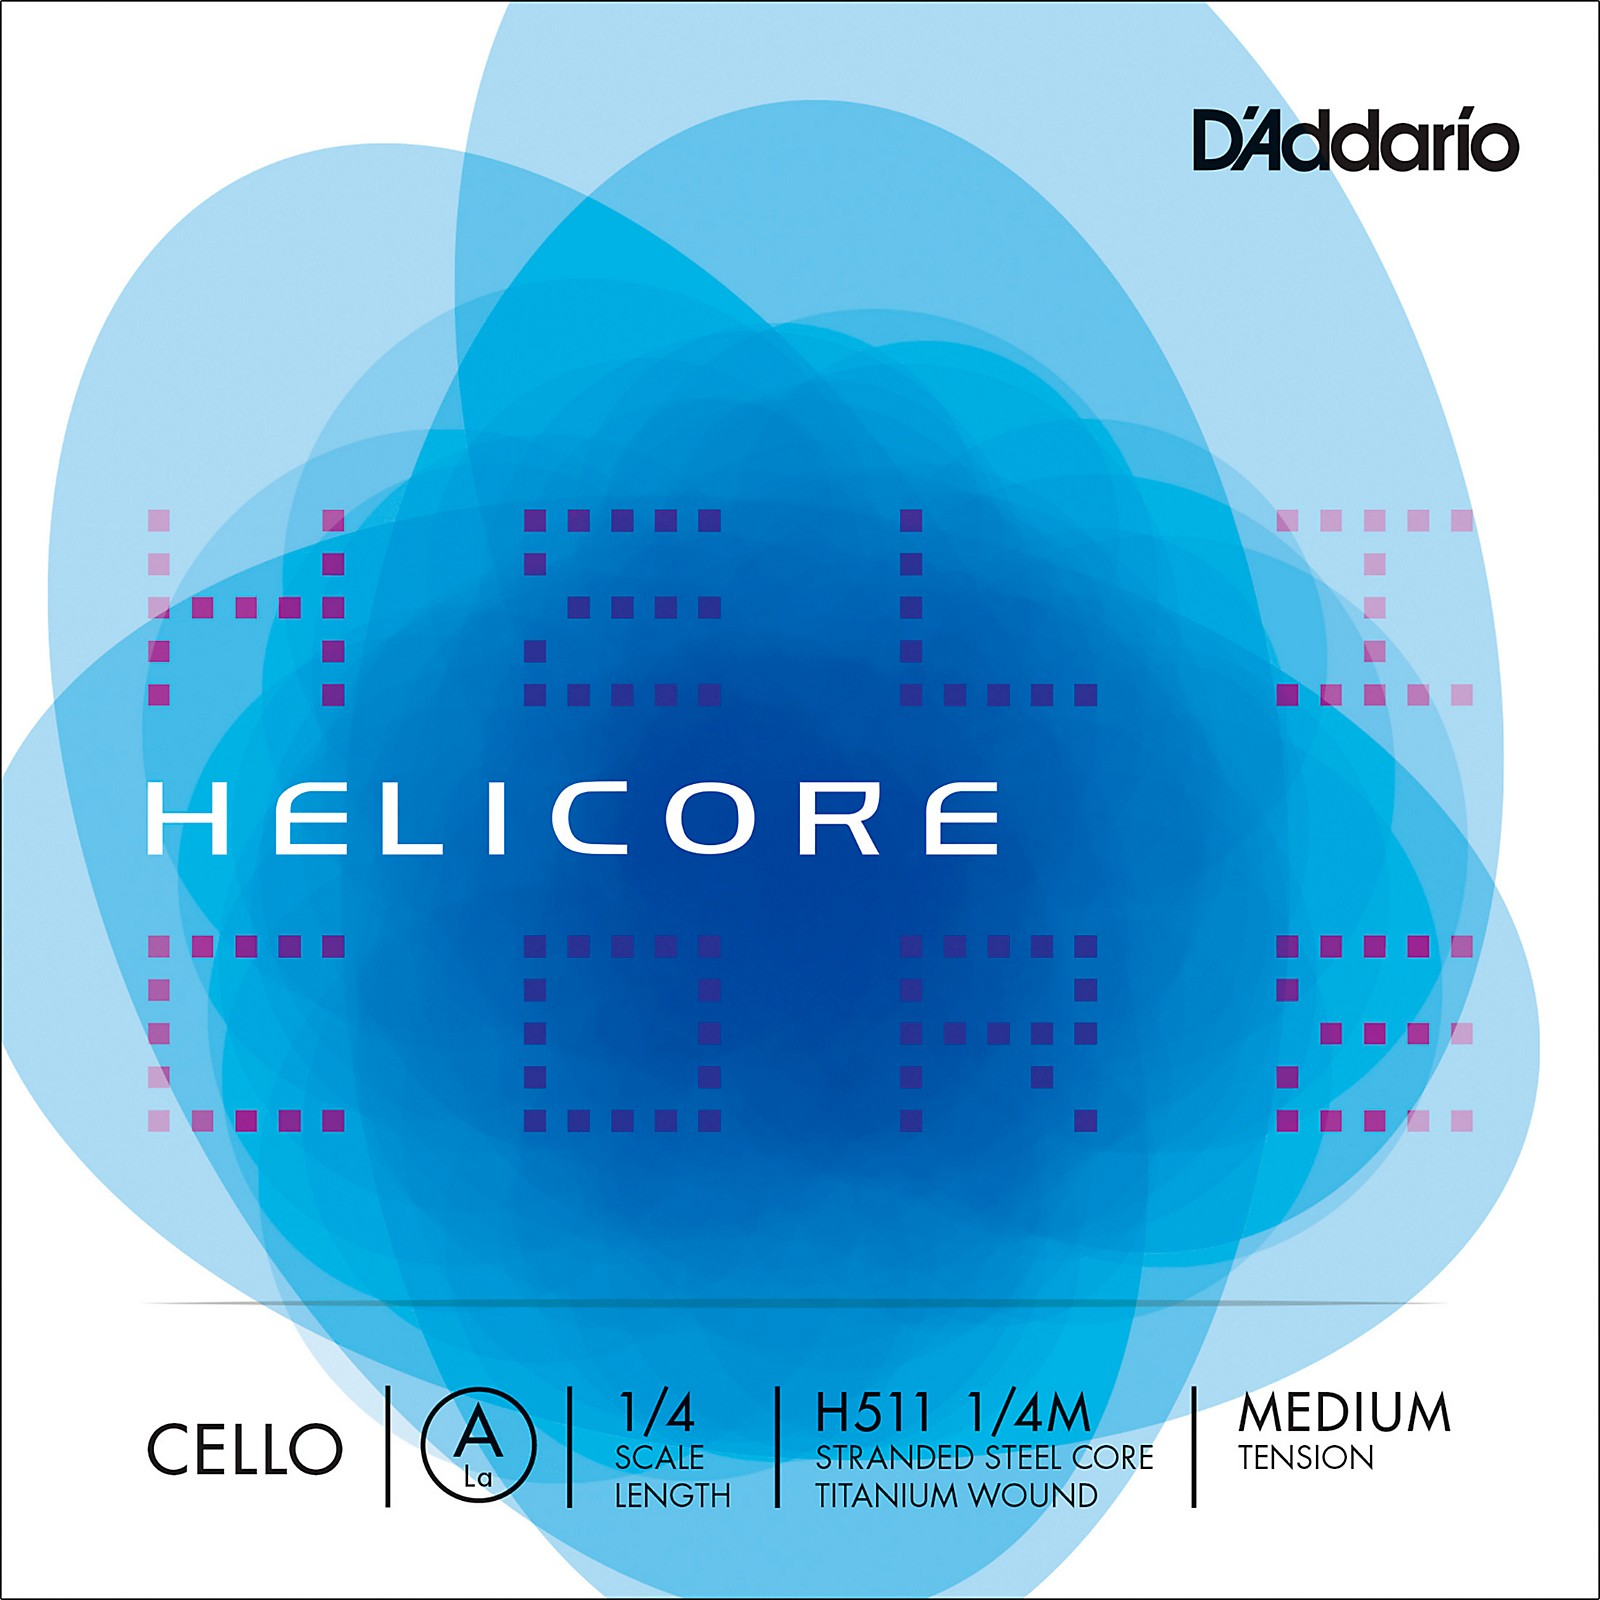 D'Addario Helicore Series Cello A String